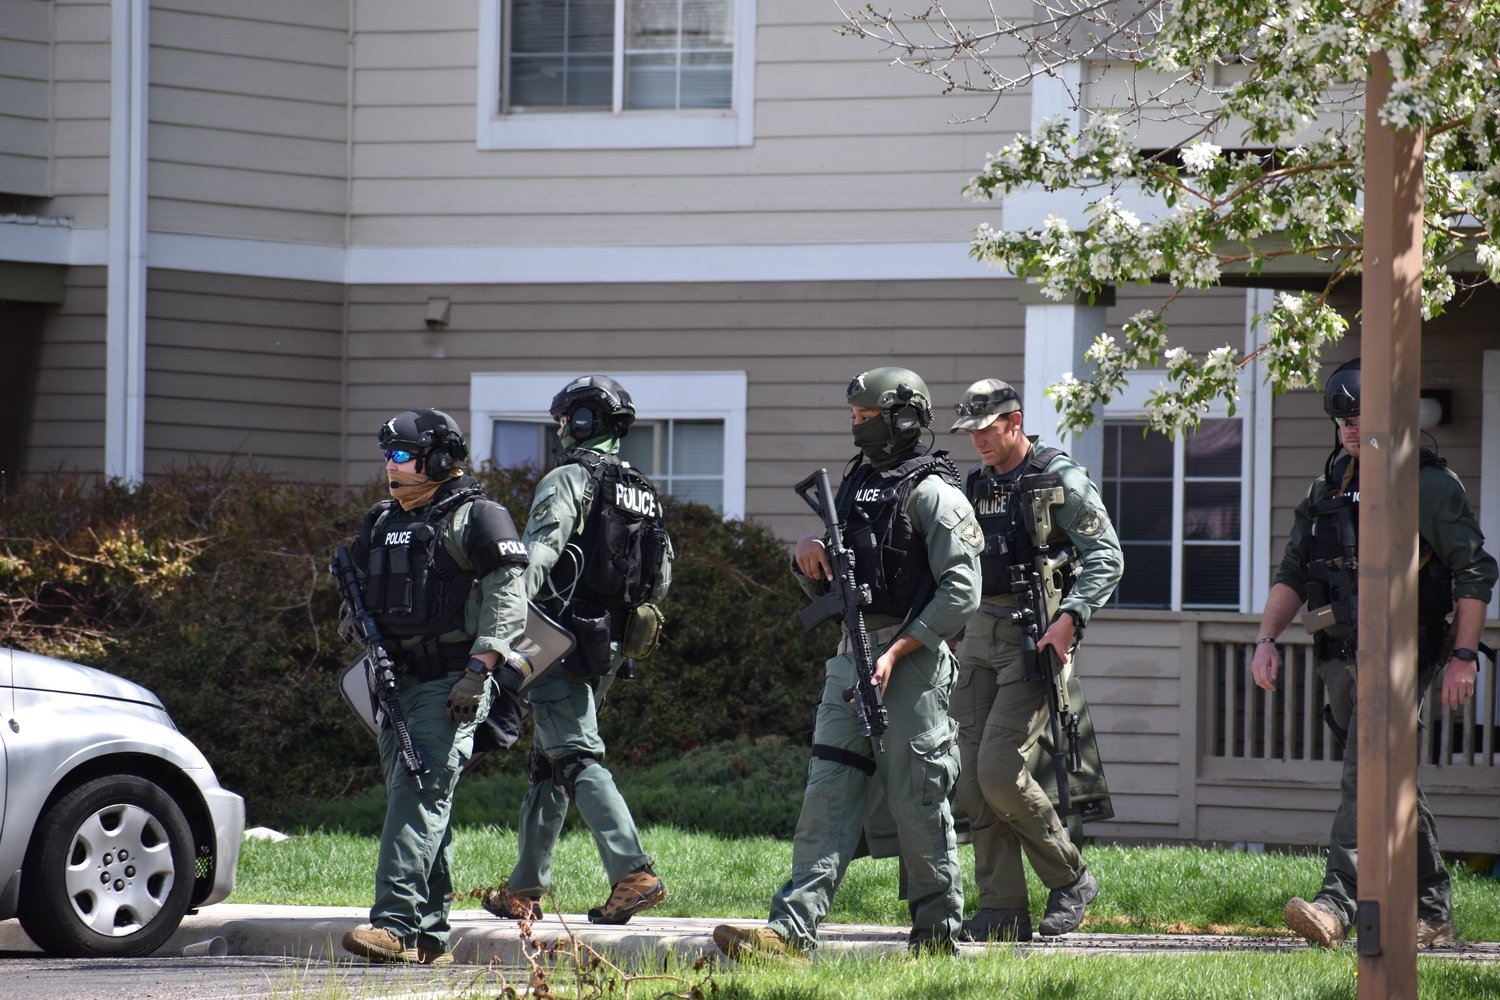 Swat teams leaving the Riverwalk Apartments in   Brighton. Police later said there was no potential threat to the community.